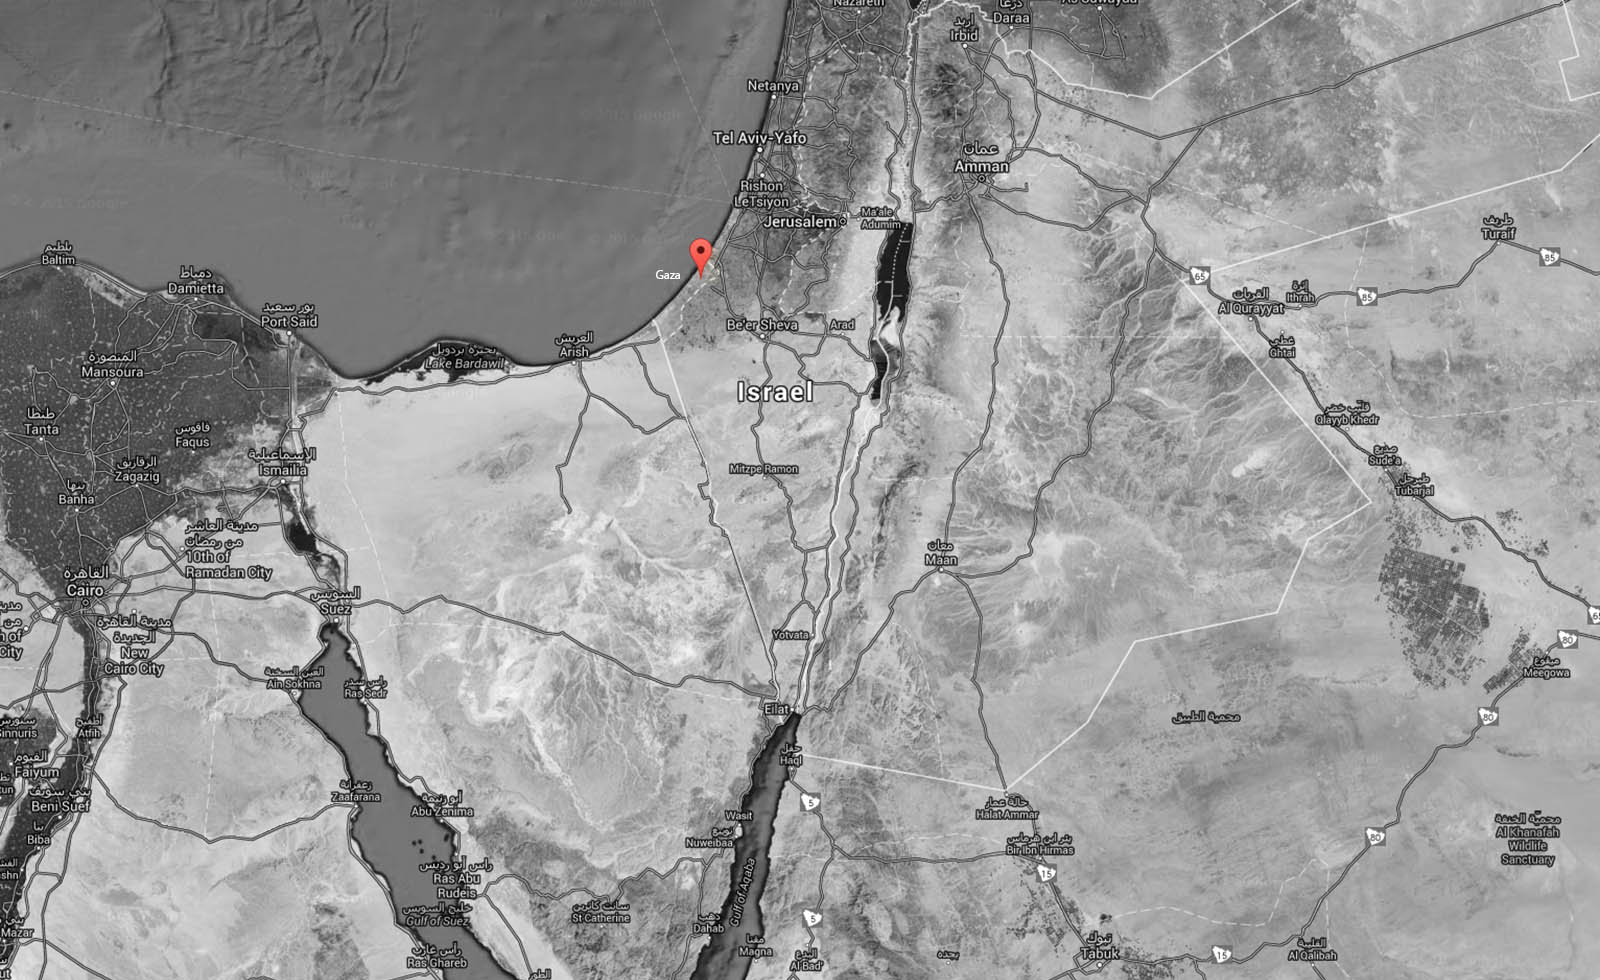 Location of Gaza as on maps.google.com